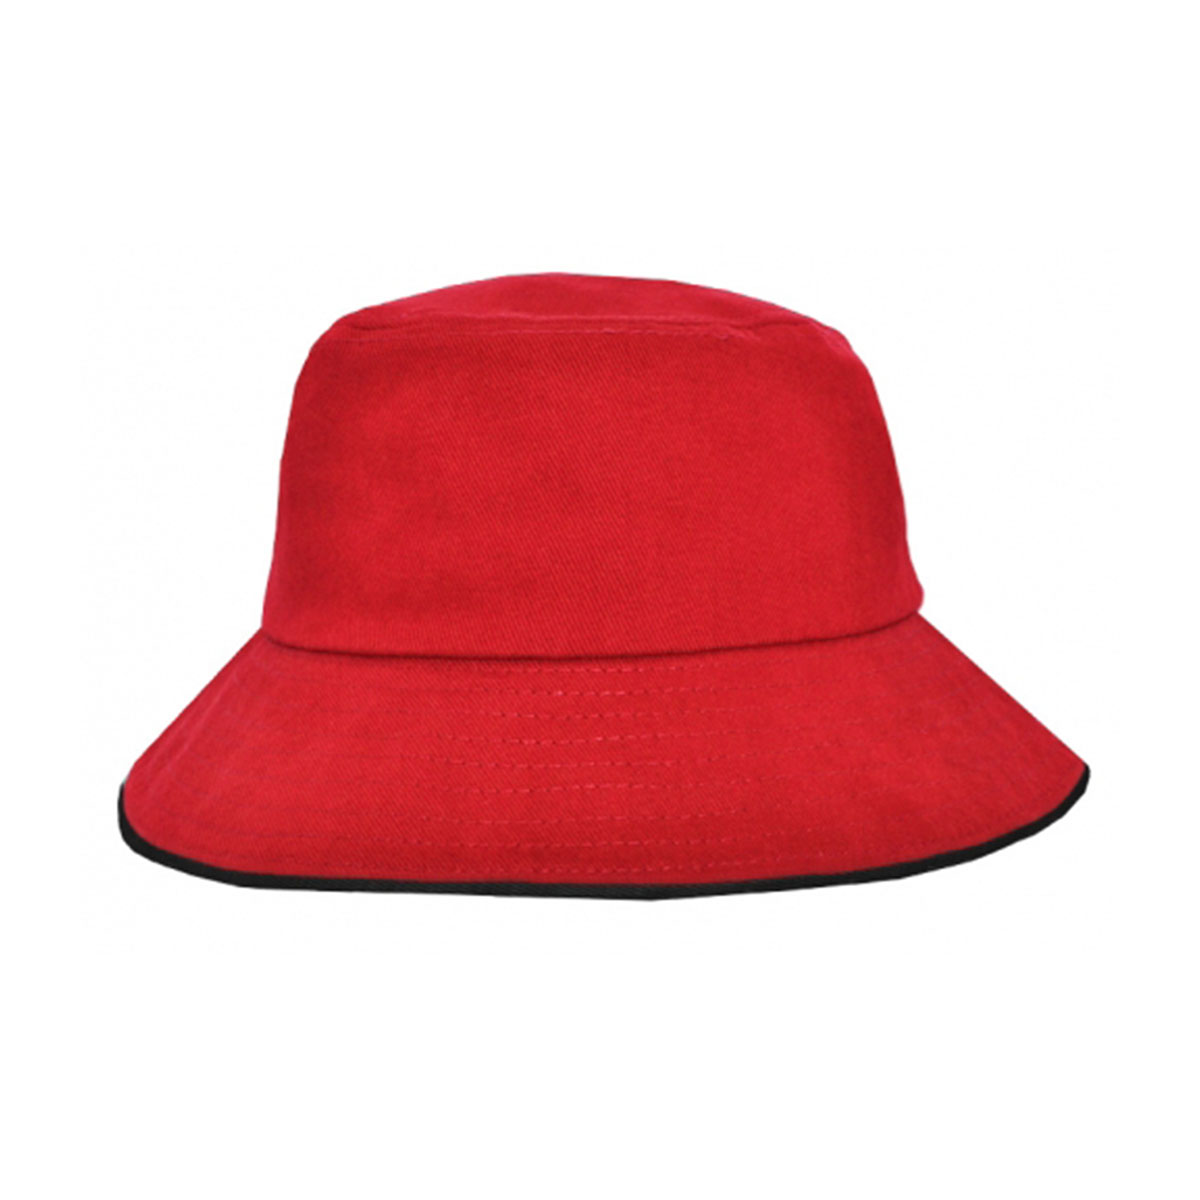 Bucket Hat Sandwich Design-Red / Black